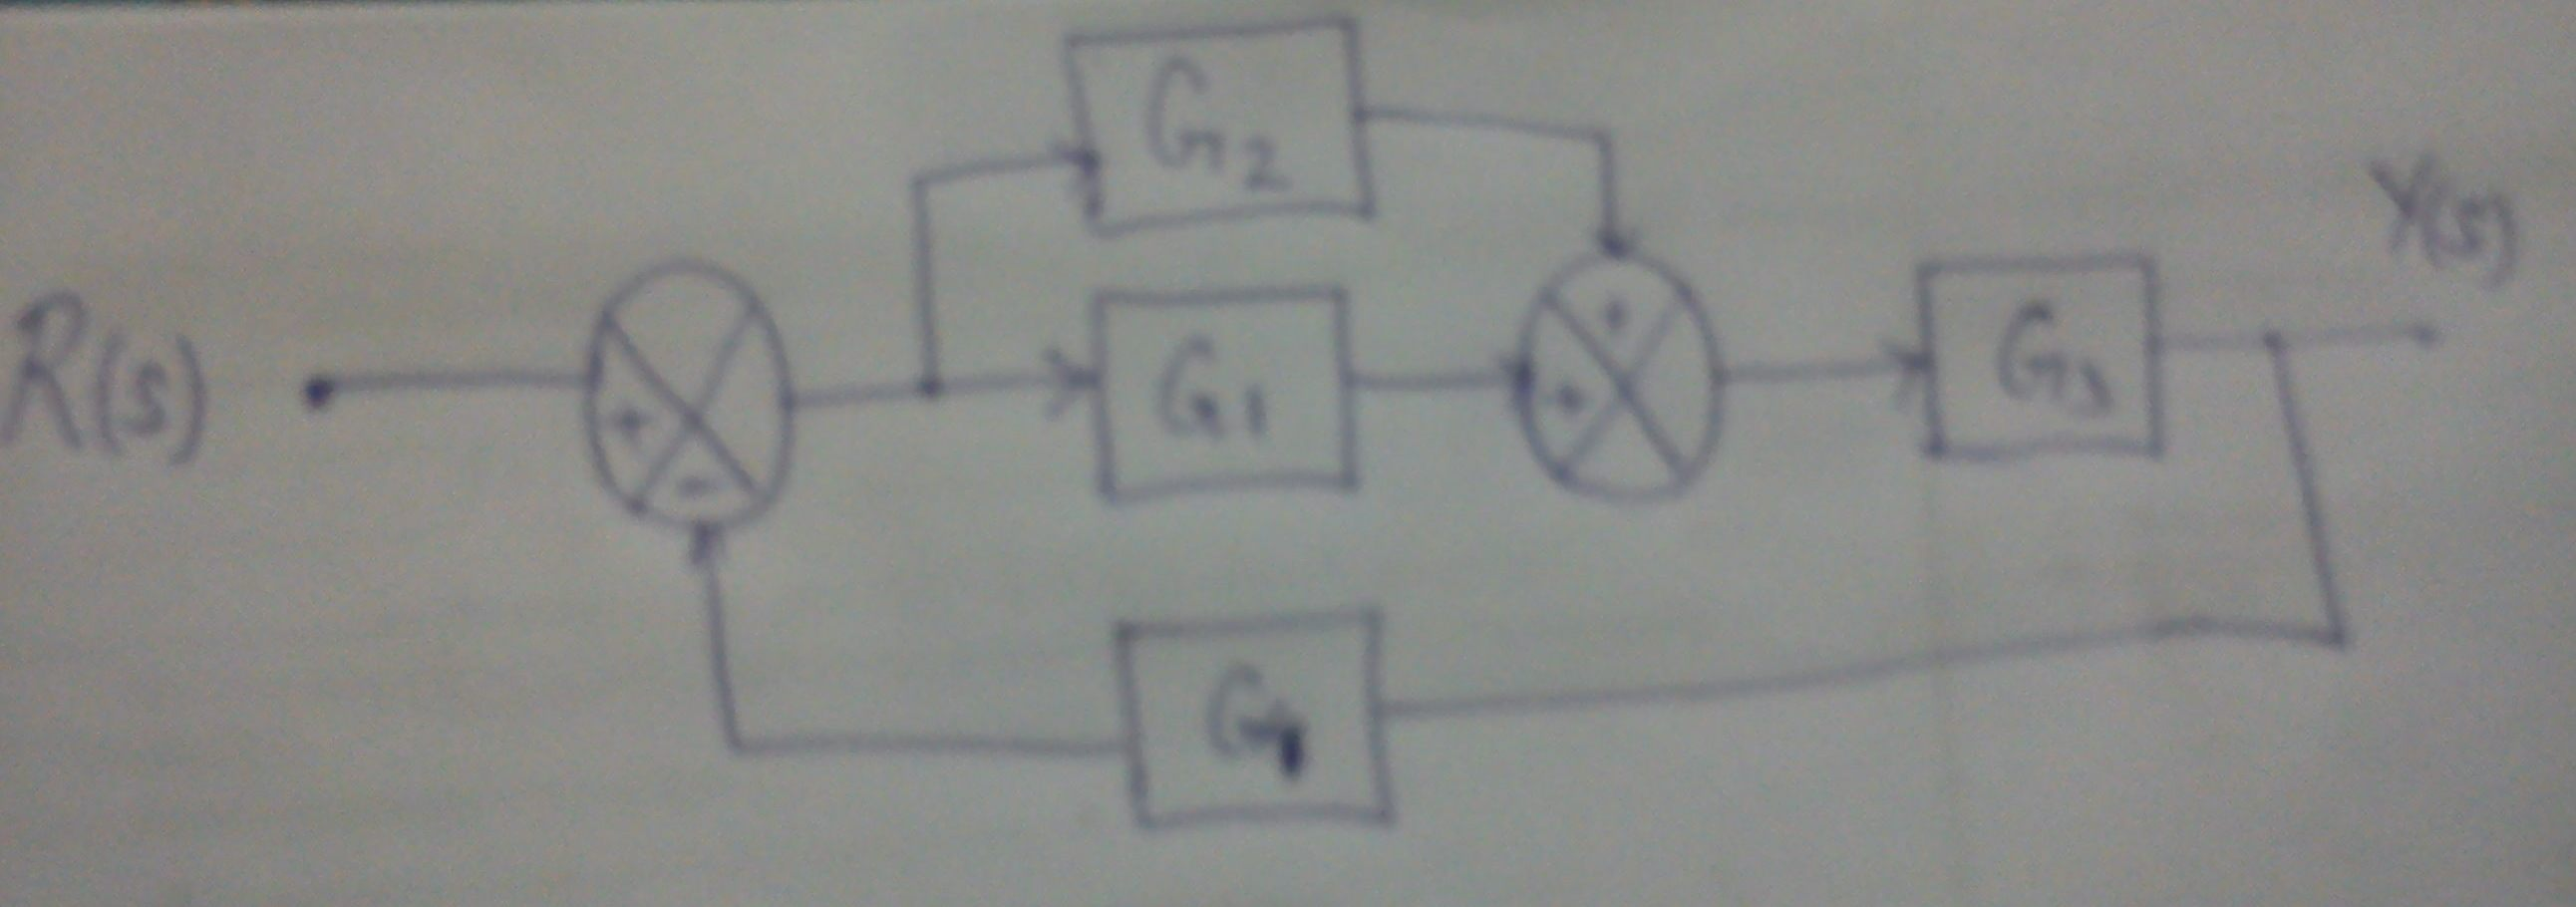 block diagram reduction matlab